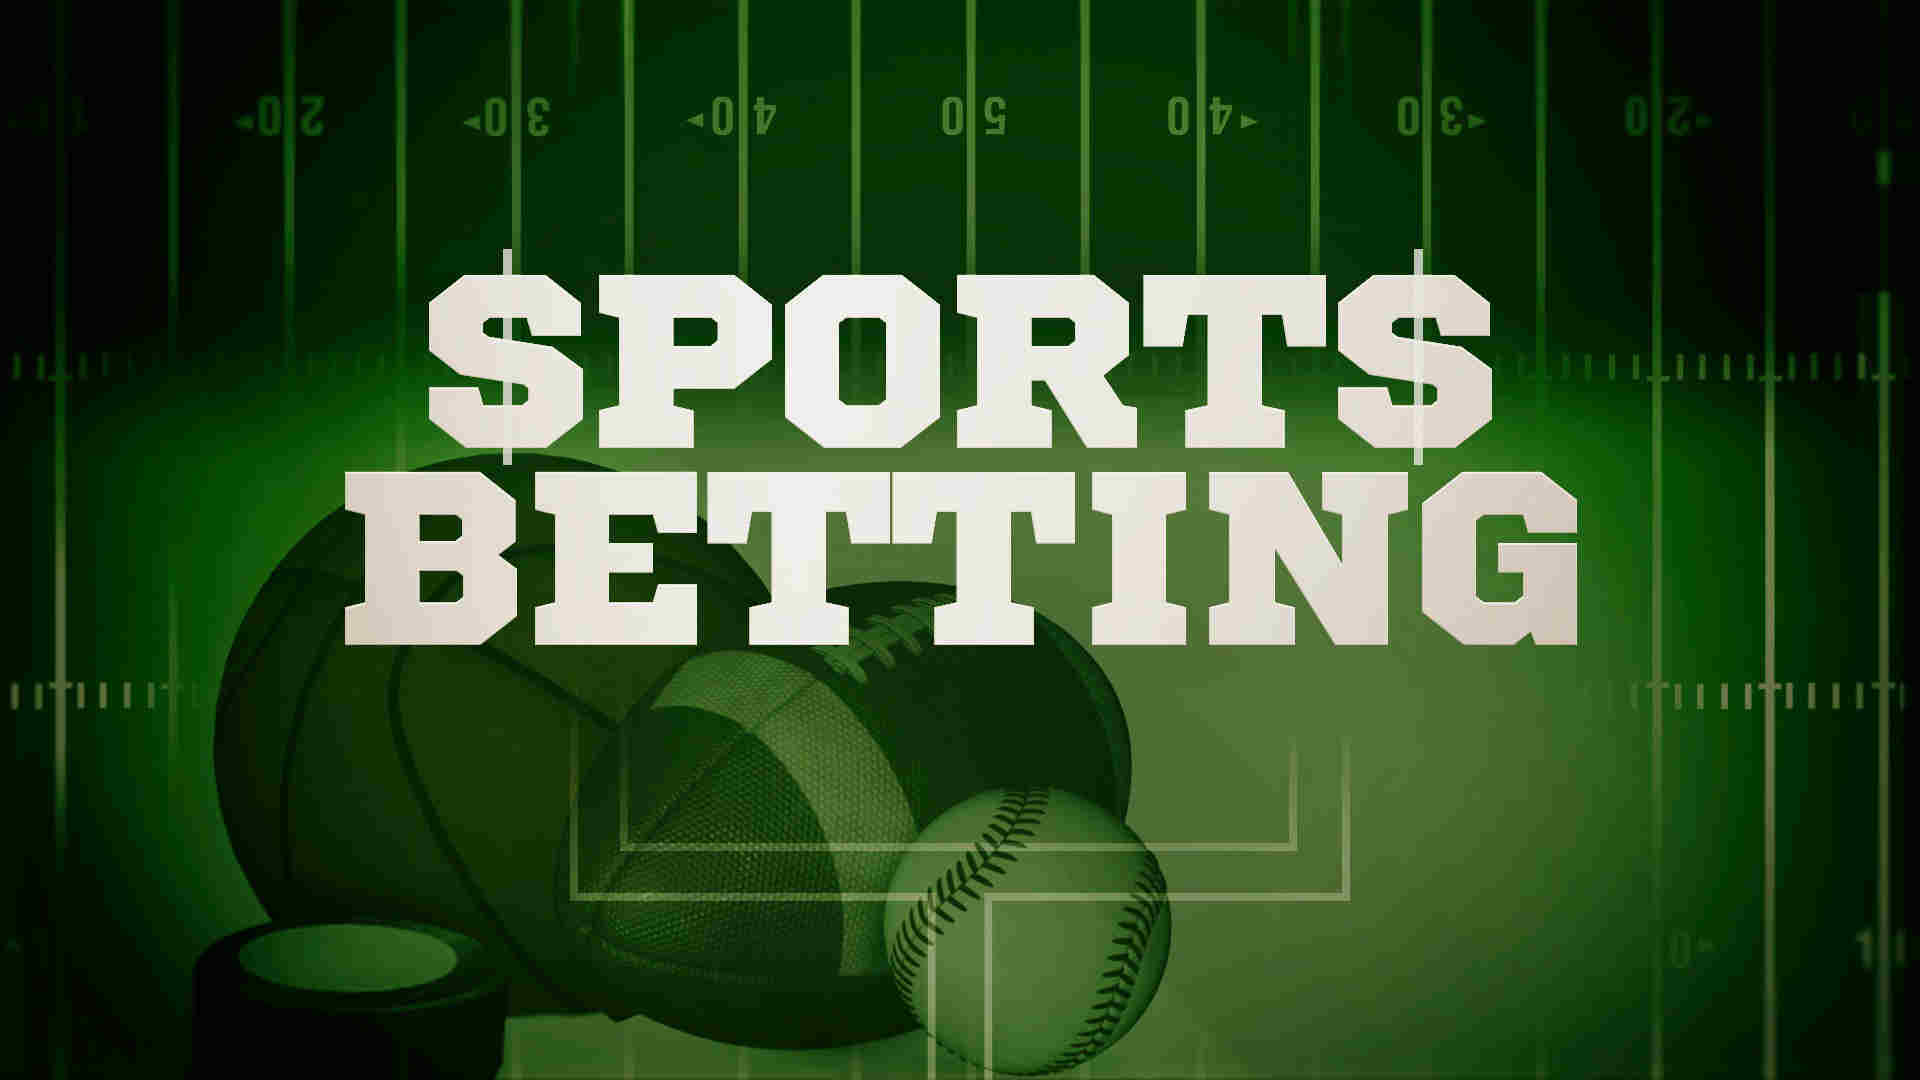 What are the expected rewards for you by playing the soccer betting games online?